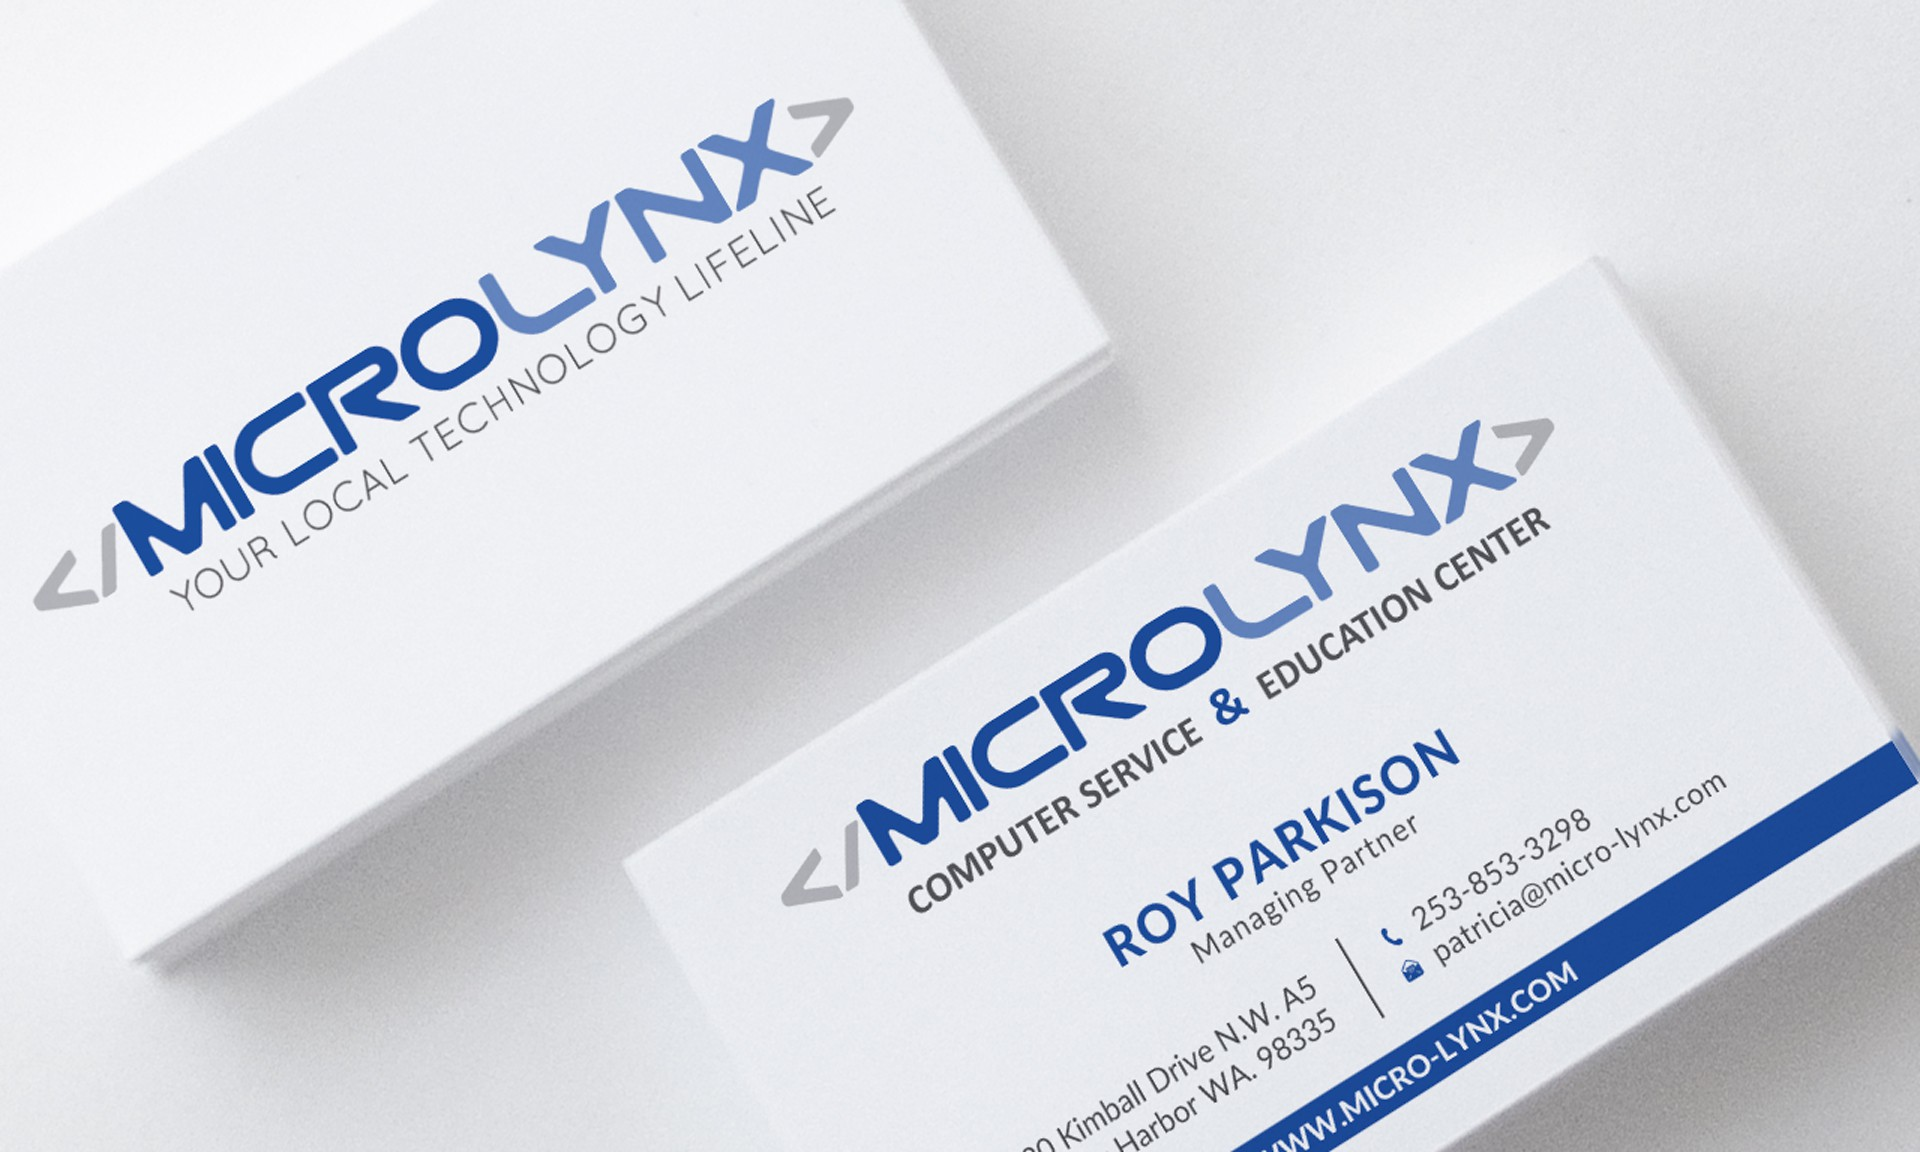 Business cards for computer and IT support company.